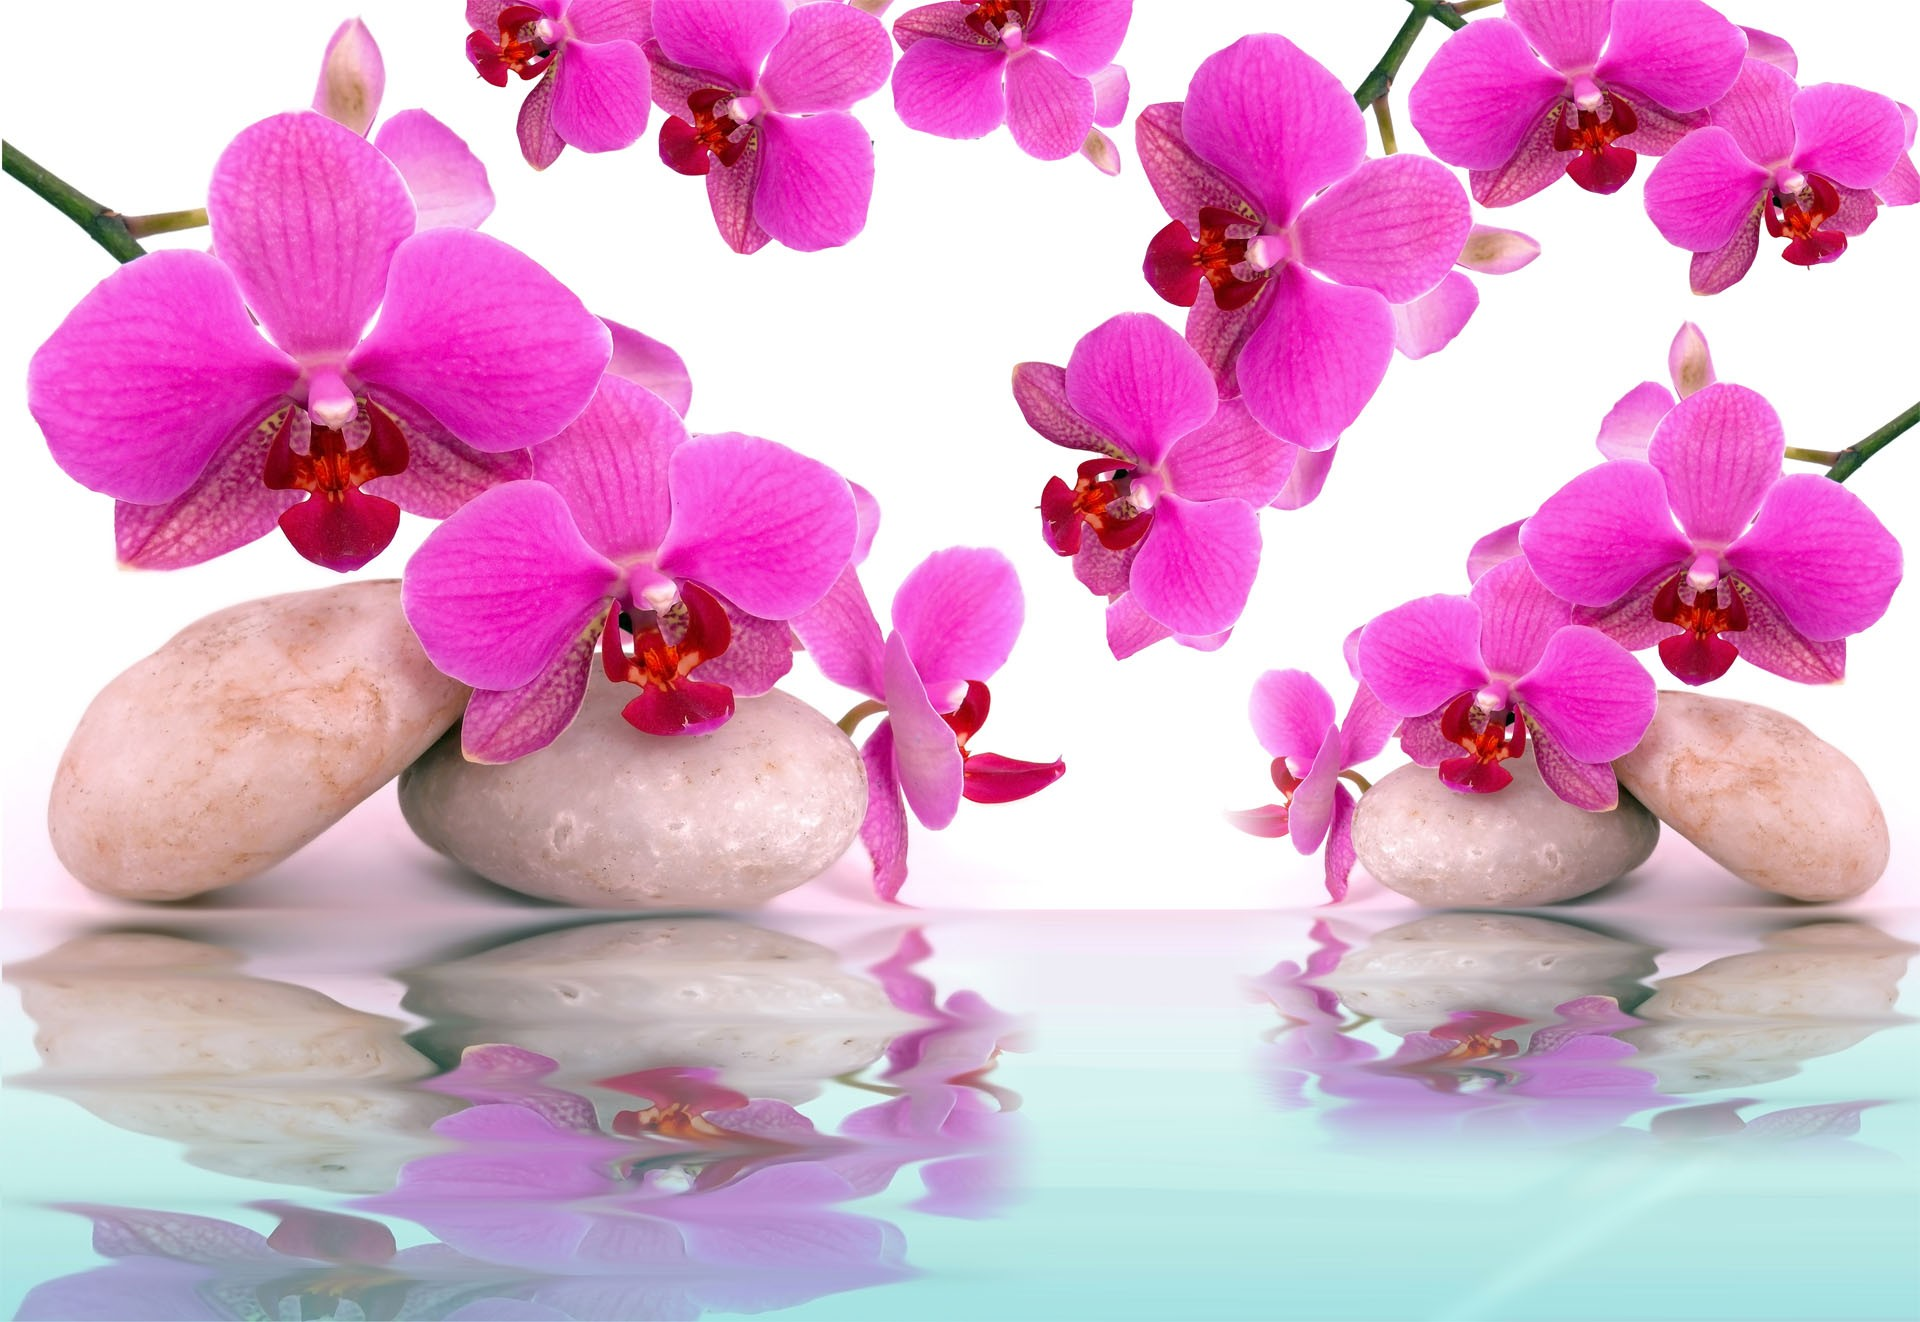 Wallpaper orchidee steine  Pink Orchids Full HD Wallpaper and Hintergrund | 1920x1322 | ID:693302